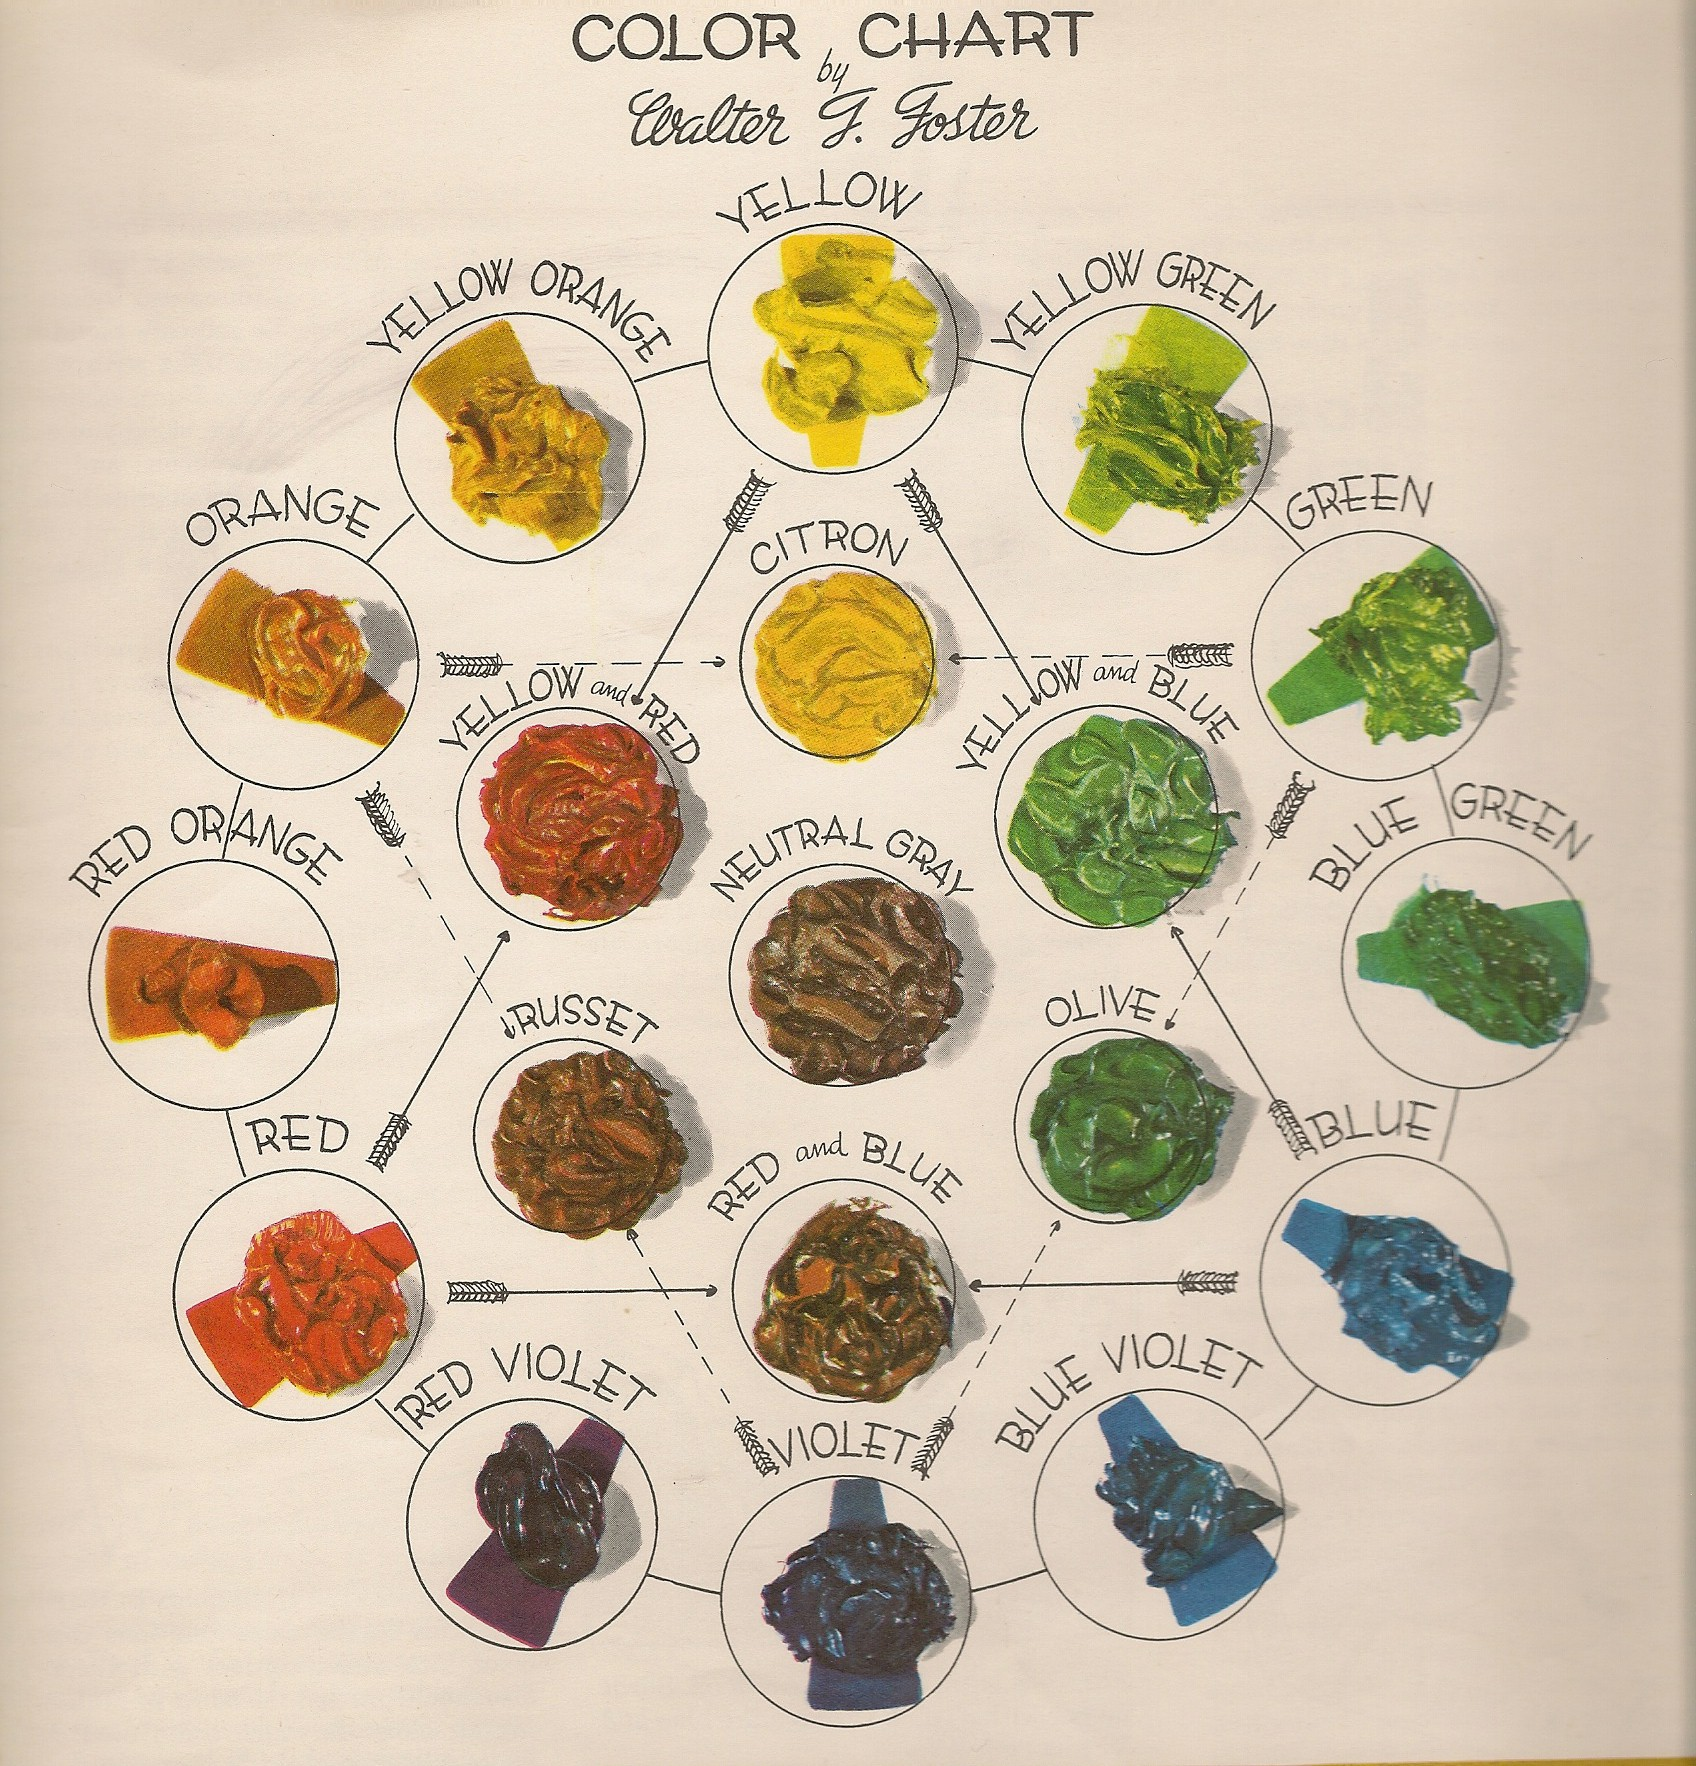 colour wheel from Walter J. Foster book